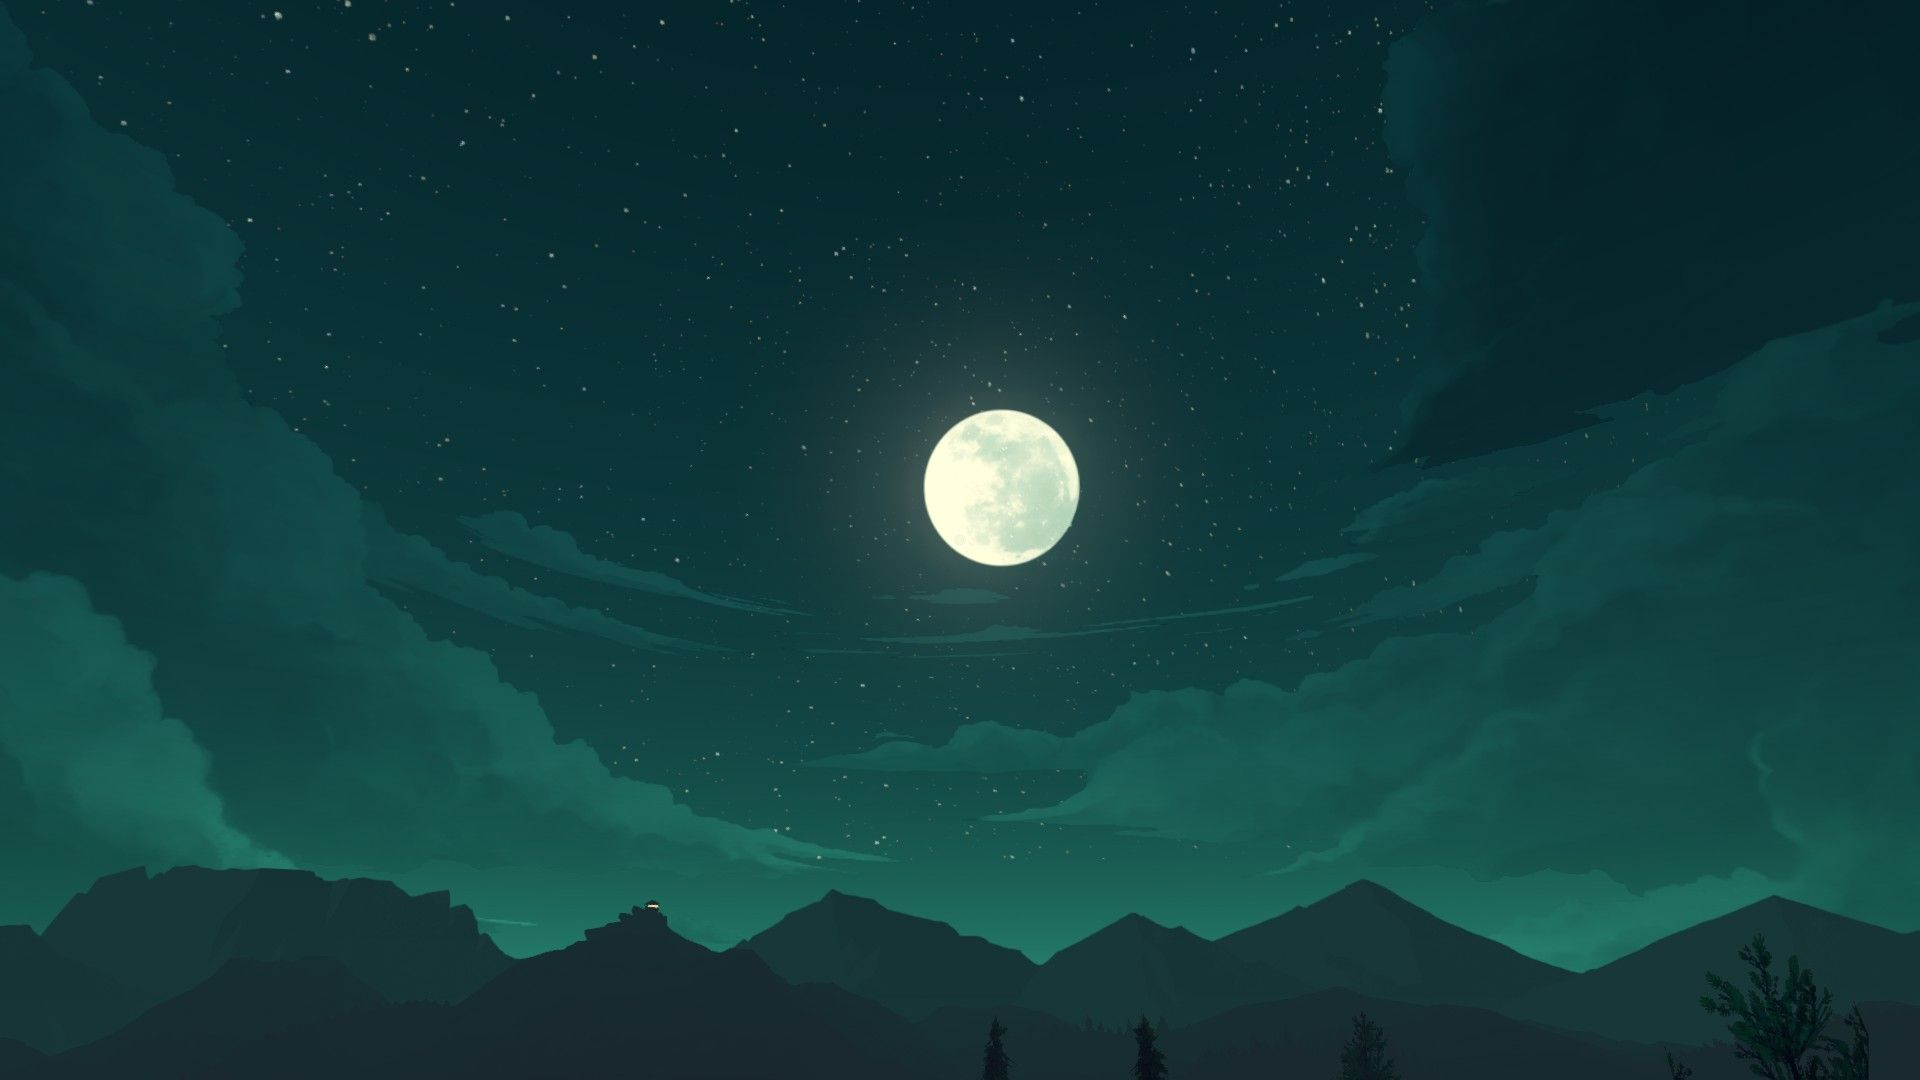 Landscape With Moon And Stars, Firewatch Wallpaper Night